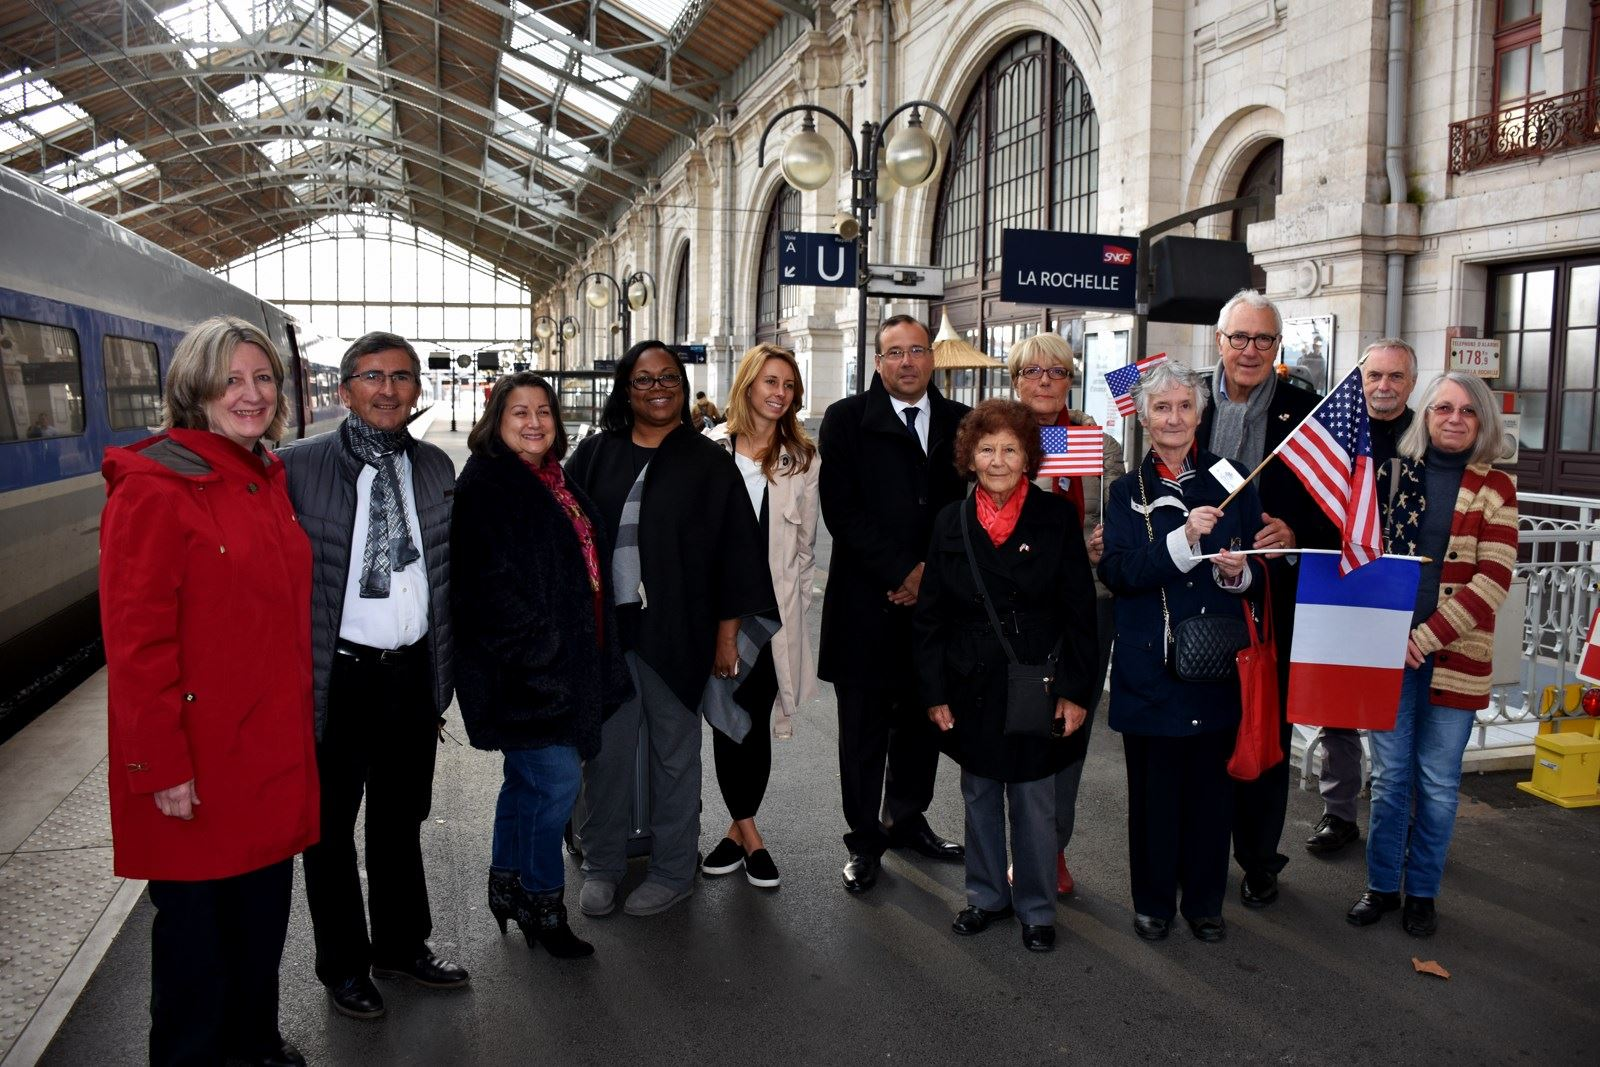 NR delegation arrives in LR greeted at train station 2017